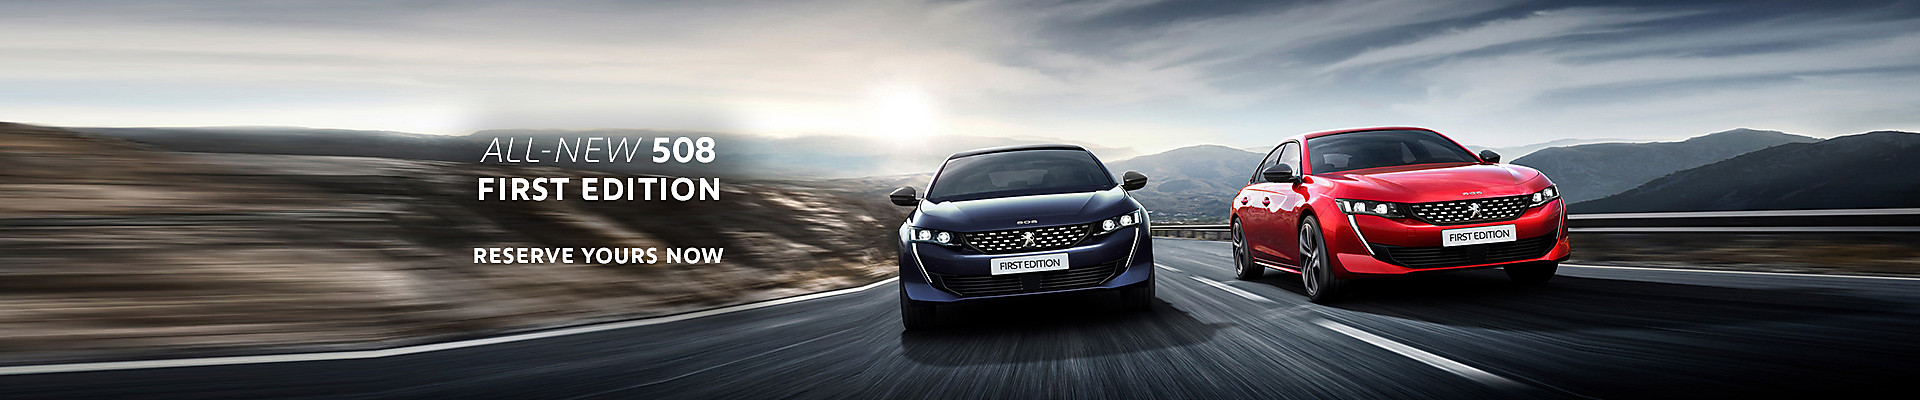 Peugeot All-new 508 First Edition in Ultimate Red and Twilight Blue